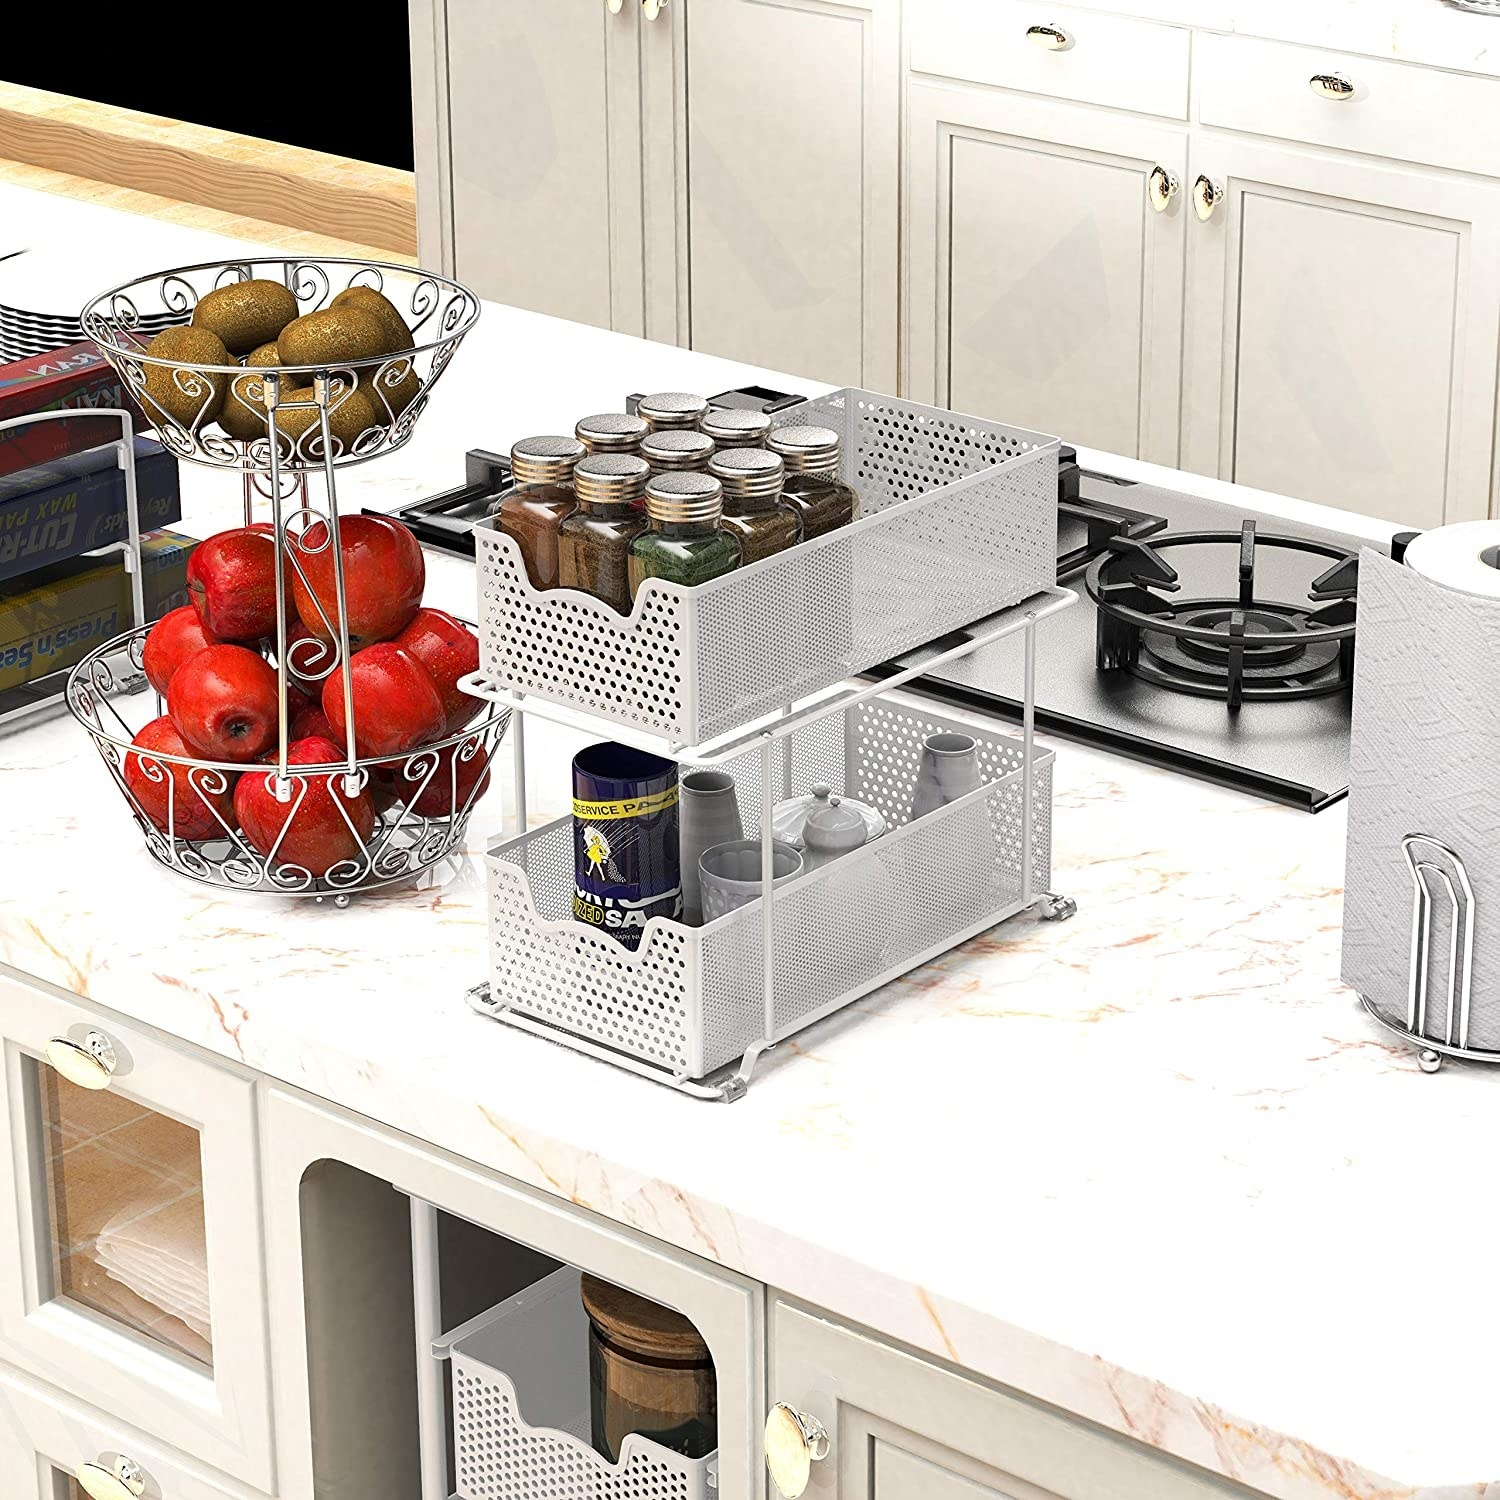 The two-tier set of drawers with spices and kitchen items inside